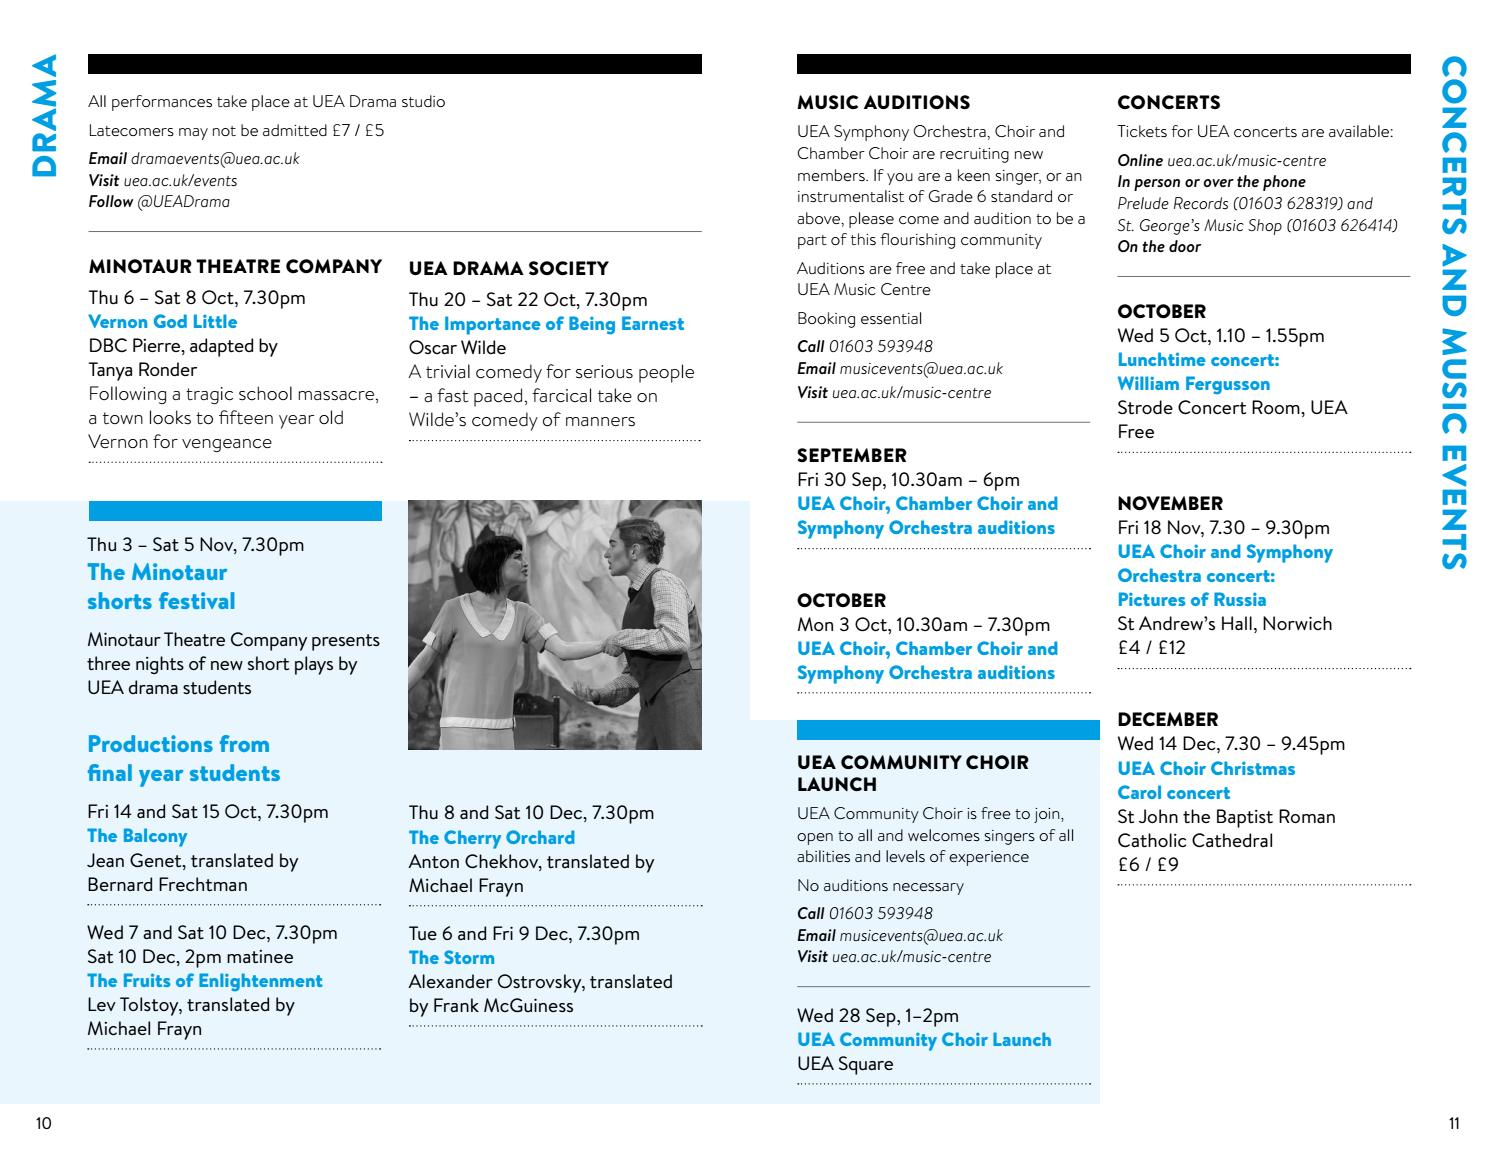 WHAT'S ON - Autumn 2016 by What's On at UEA - issuu